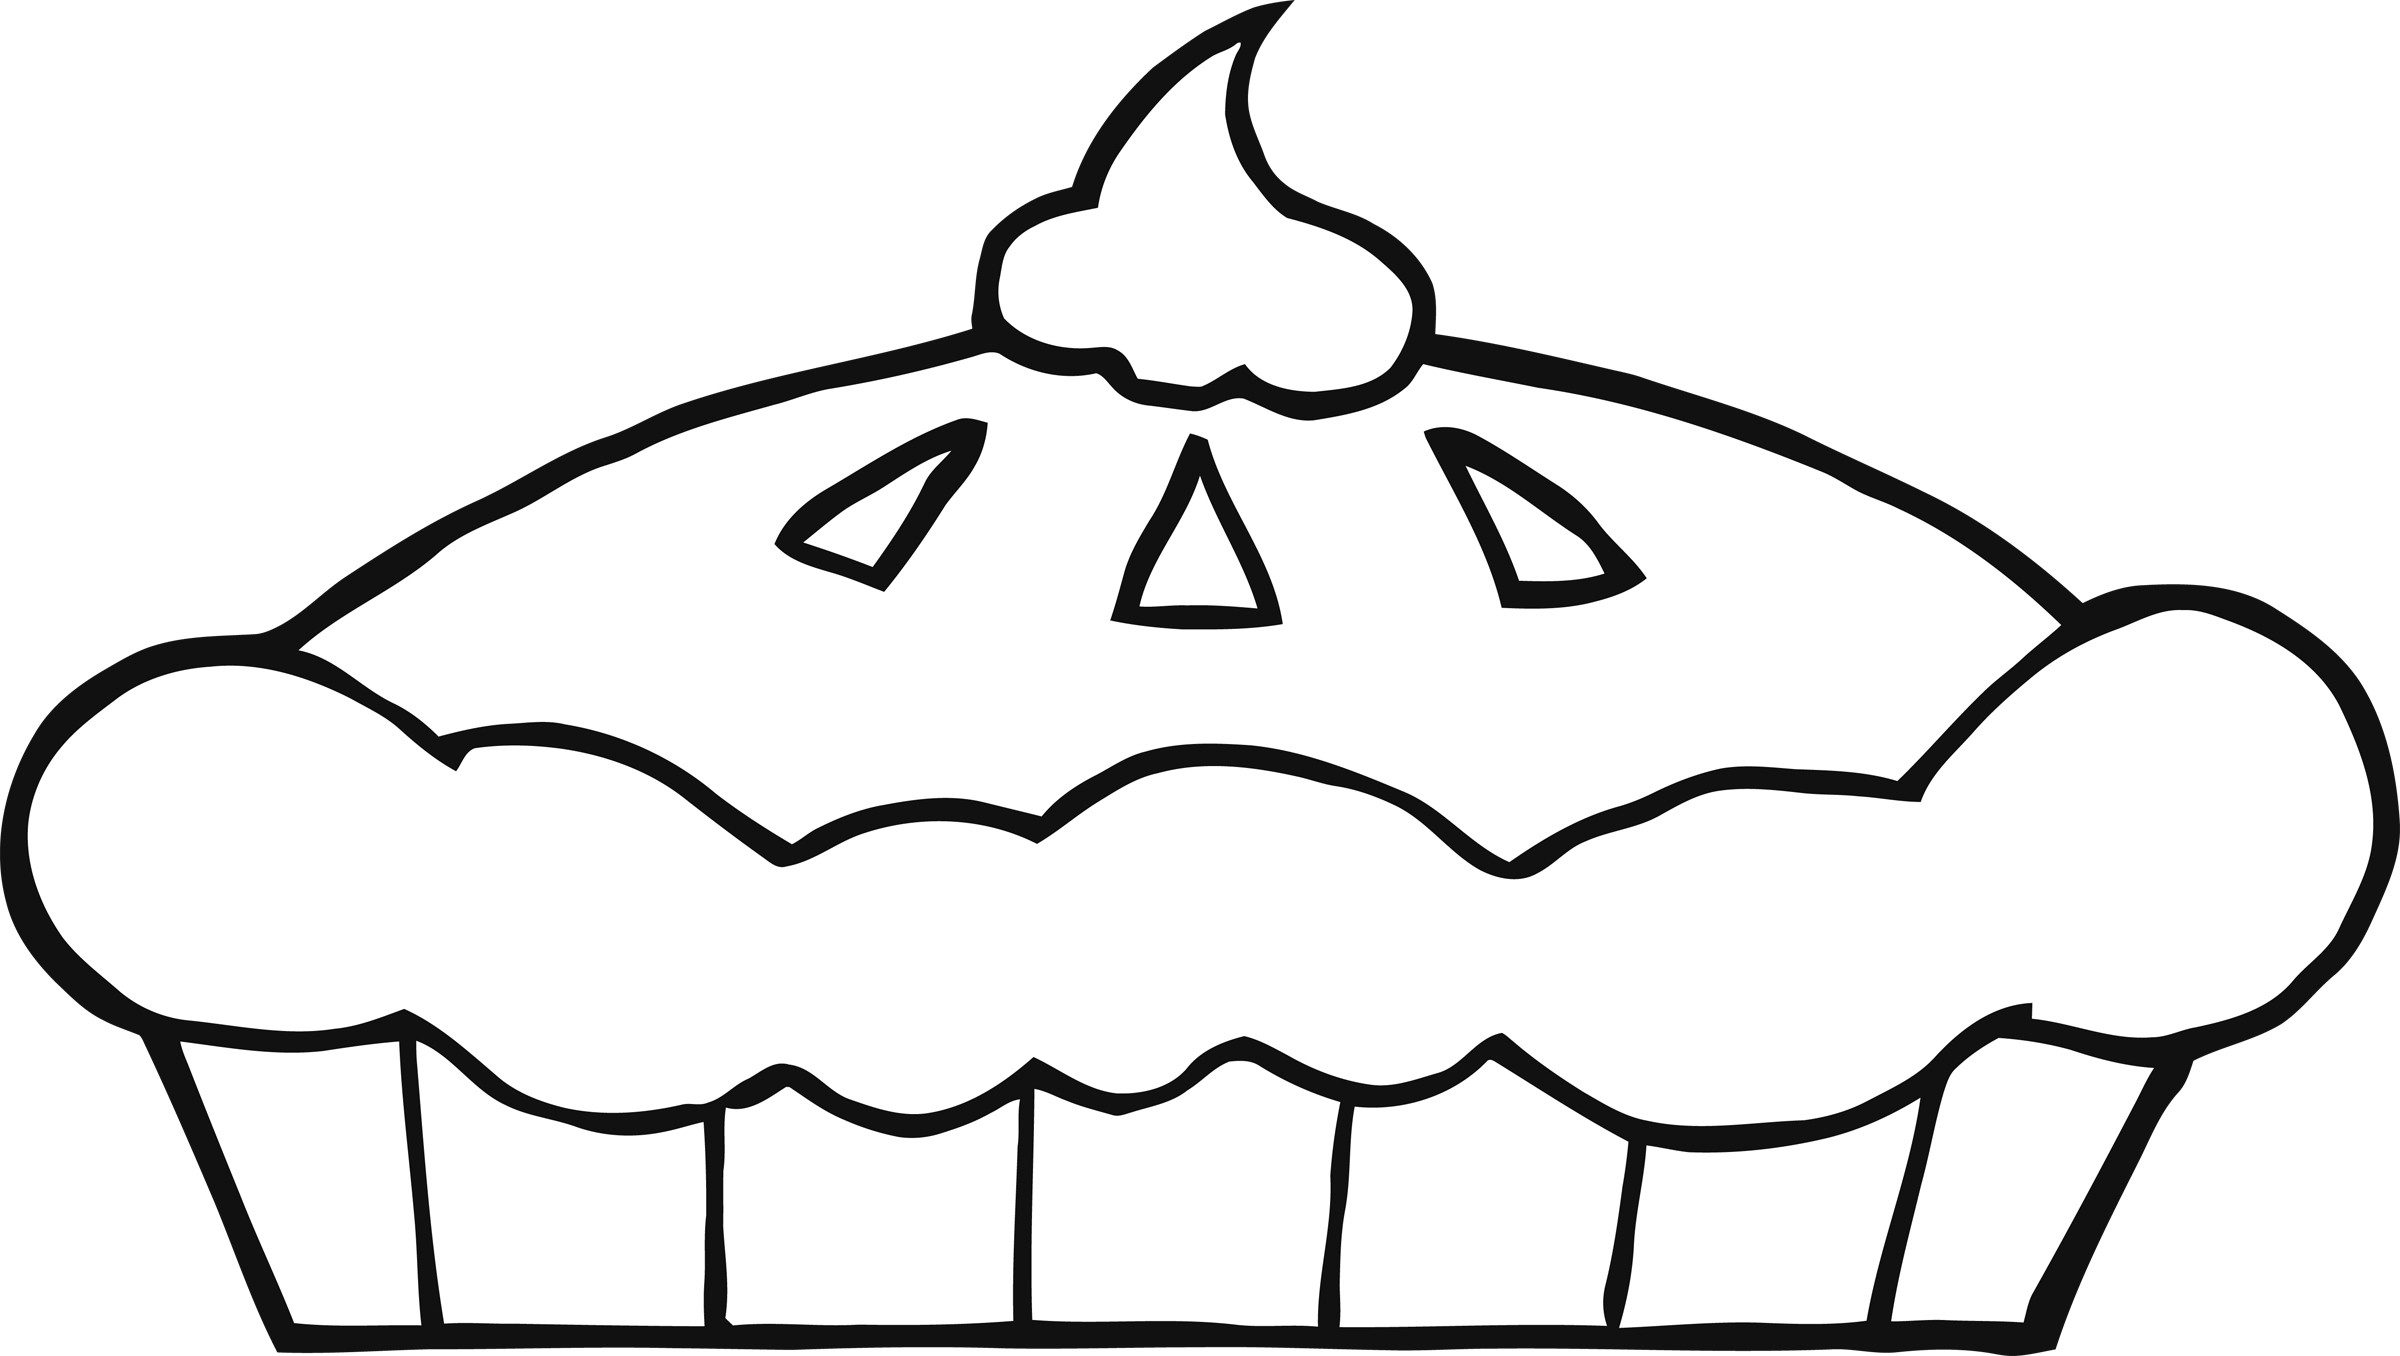 Best Pie Clipart Black And White